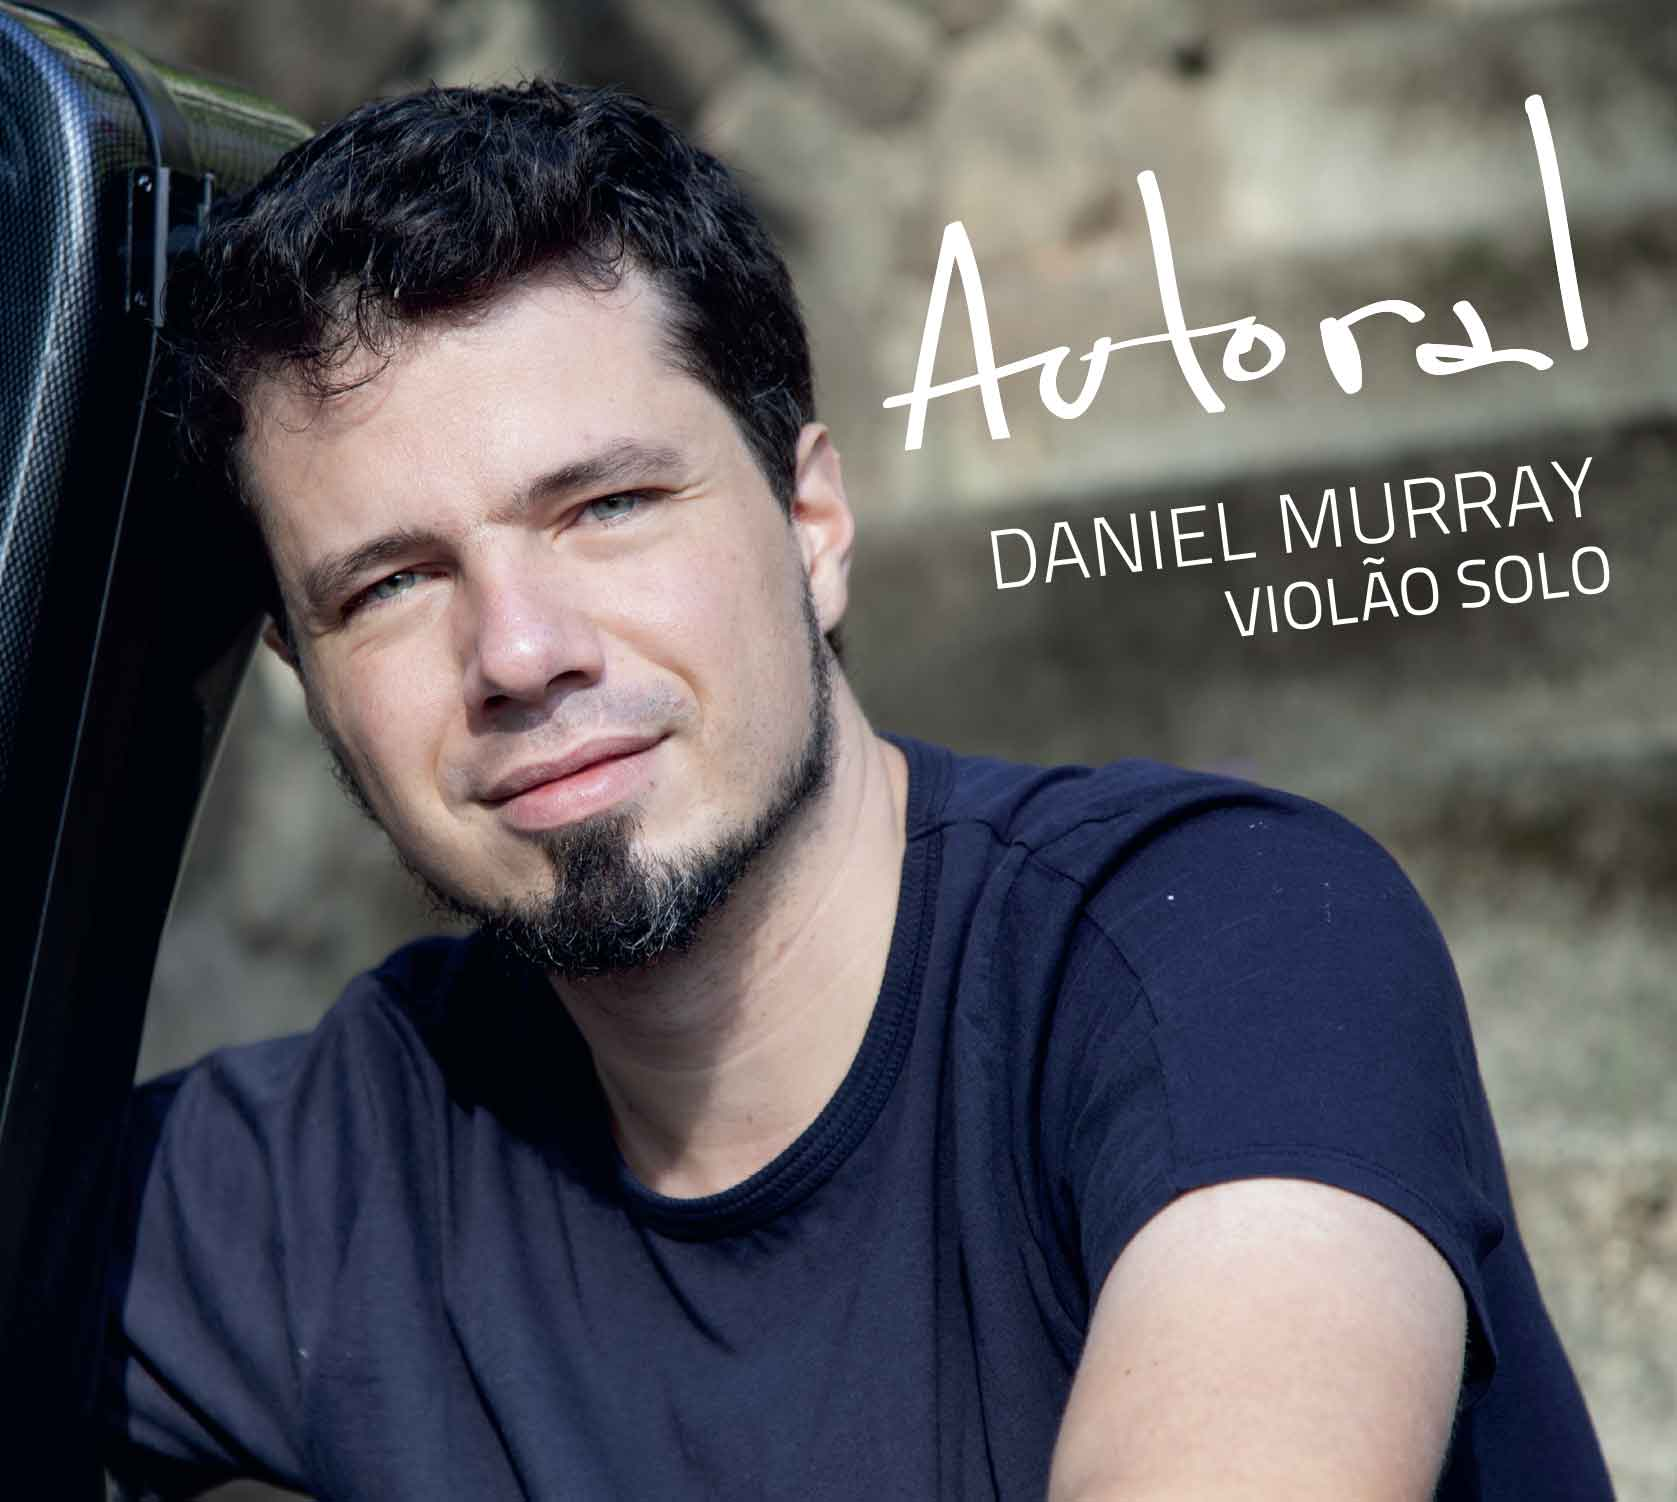 CD AUTORAL- Daniel Murray - violão solo